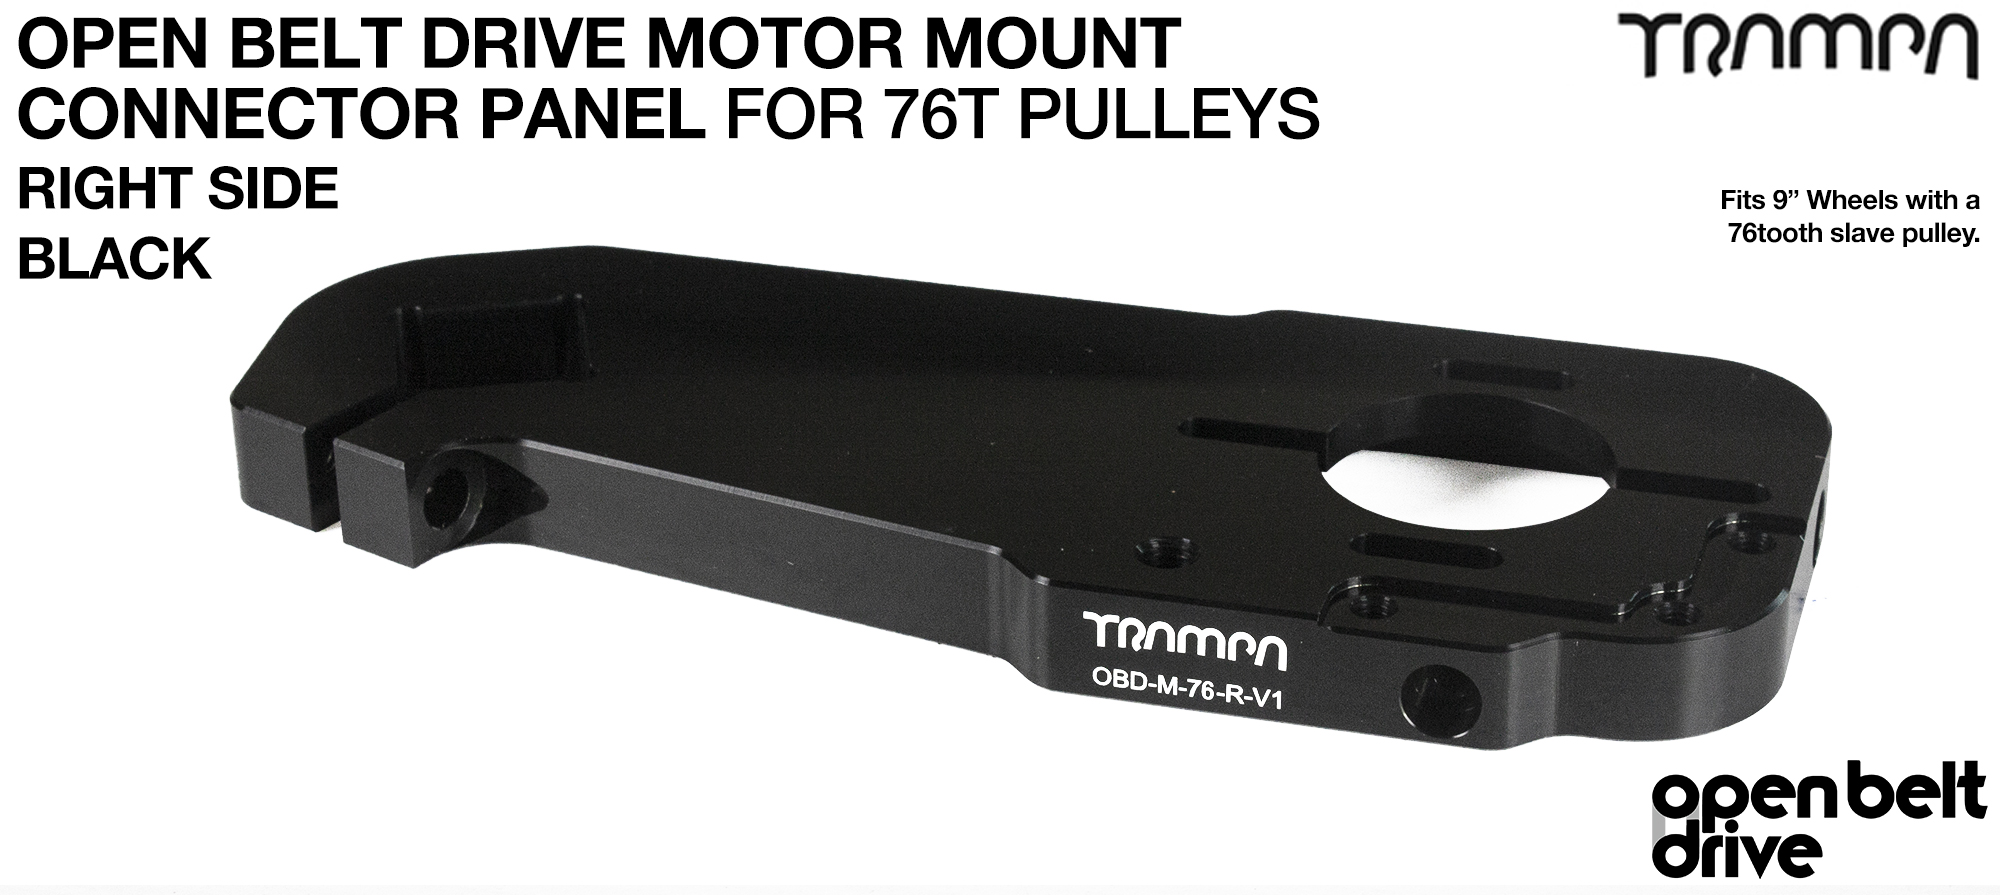 OBD Motor Mount Connector Panel for 76 tooth Pulleys - GOOFY - BLACK